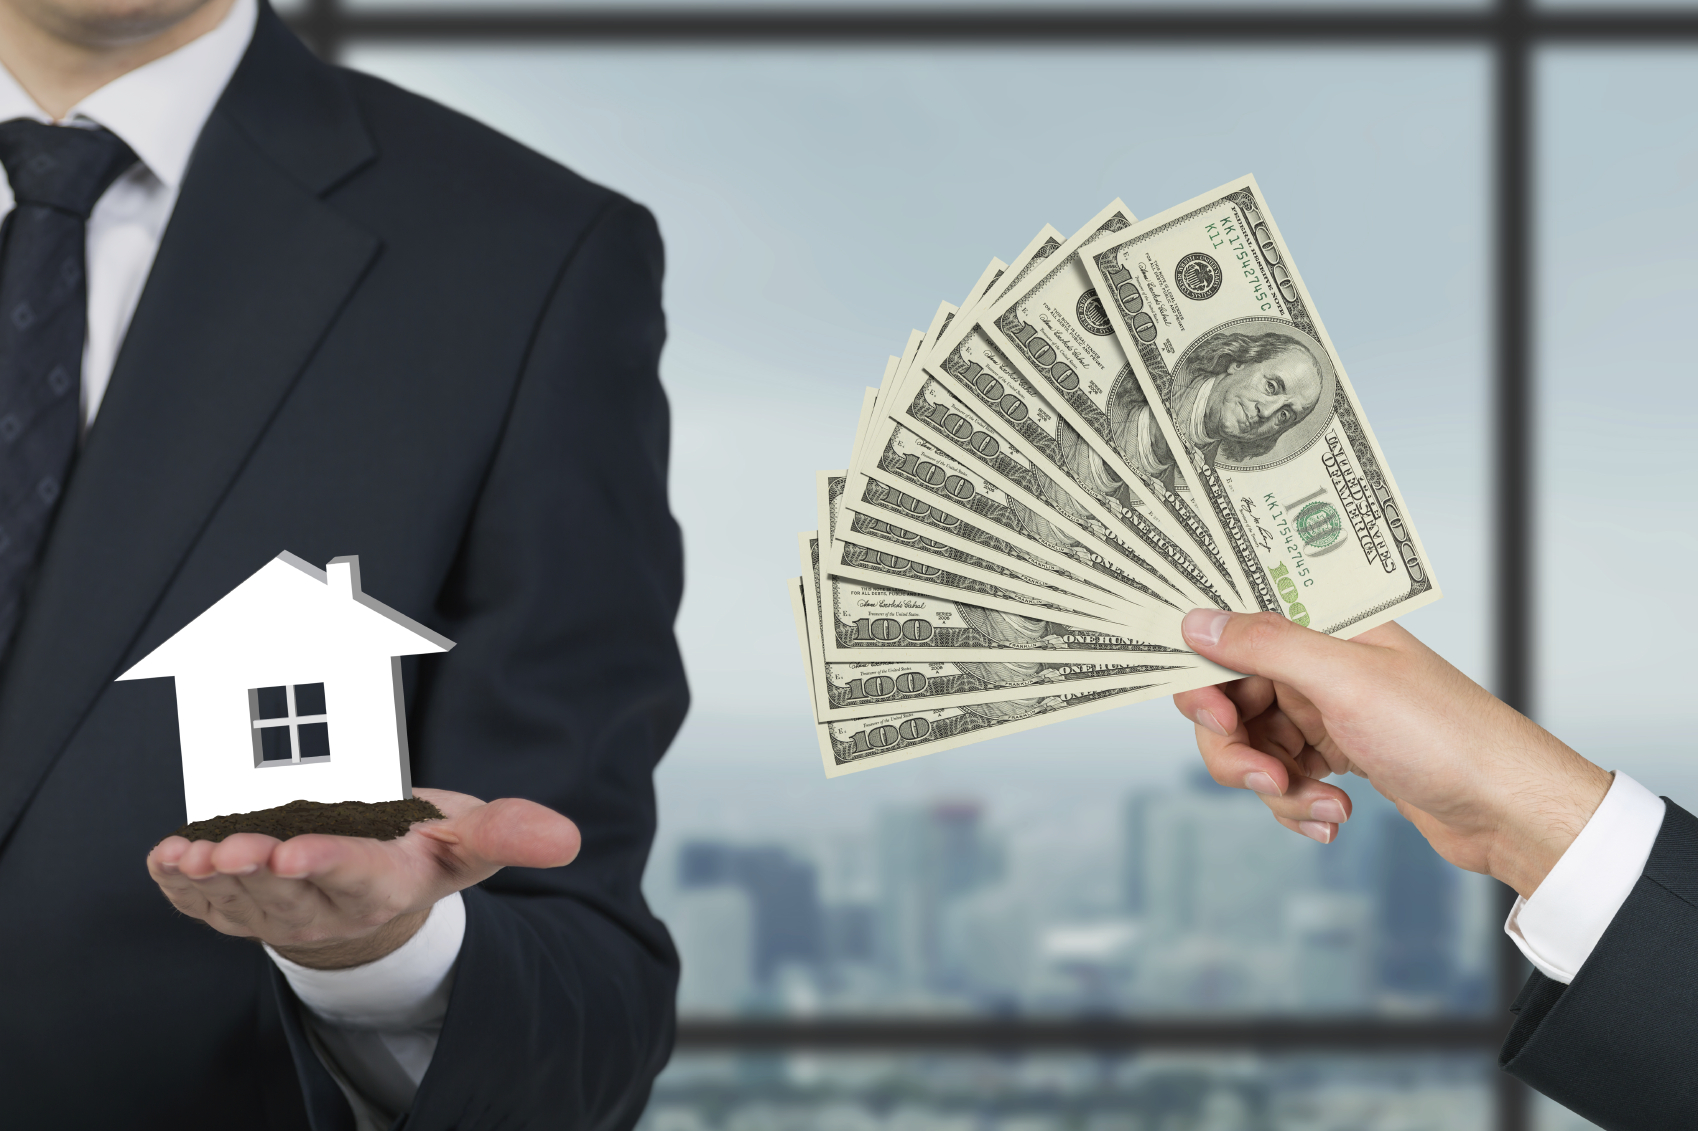 Stock photo of money exchanged for a house